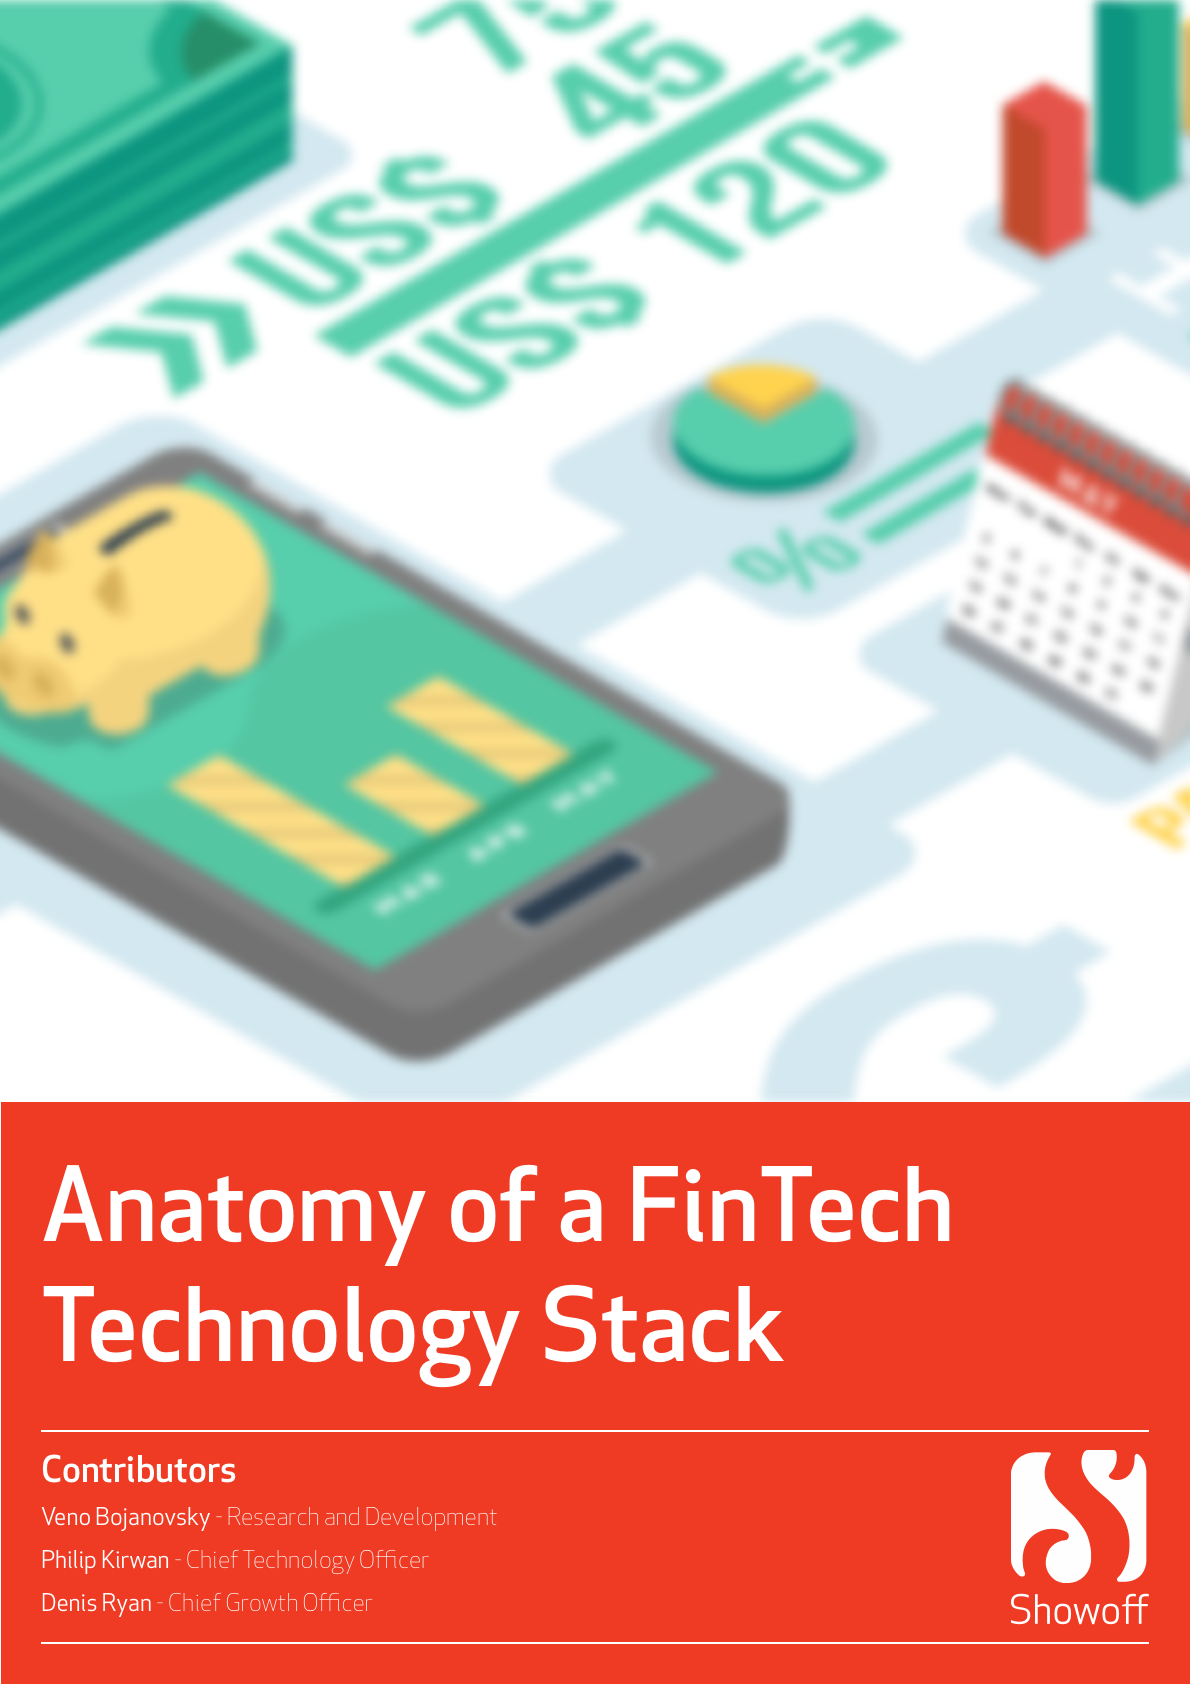 Anatomy of a FinTech Technology Stack Illustration